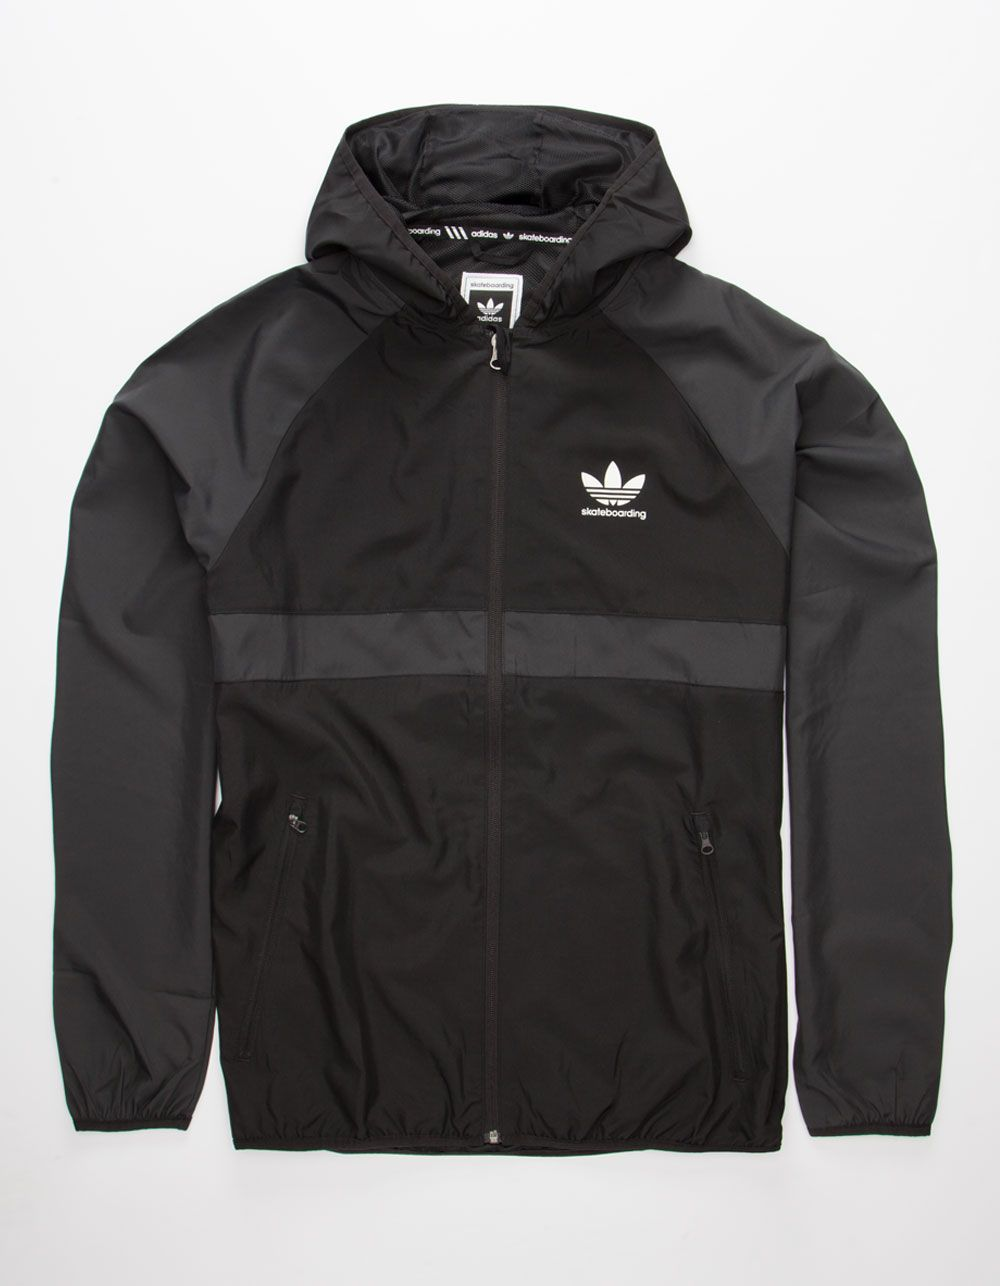 best website d14ff 2b7de Adidas ADV climaproof hooded windbreaker. Zip front. Pieced tricolor  construction with Adidas Skateboarding logo screened at left chest.